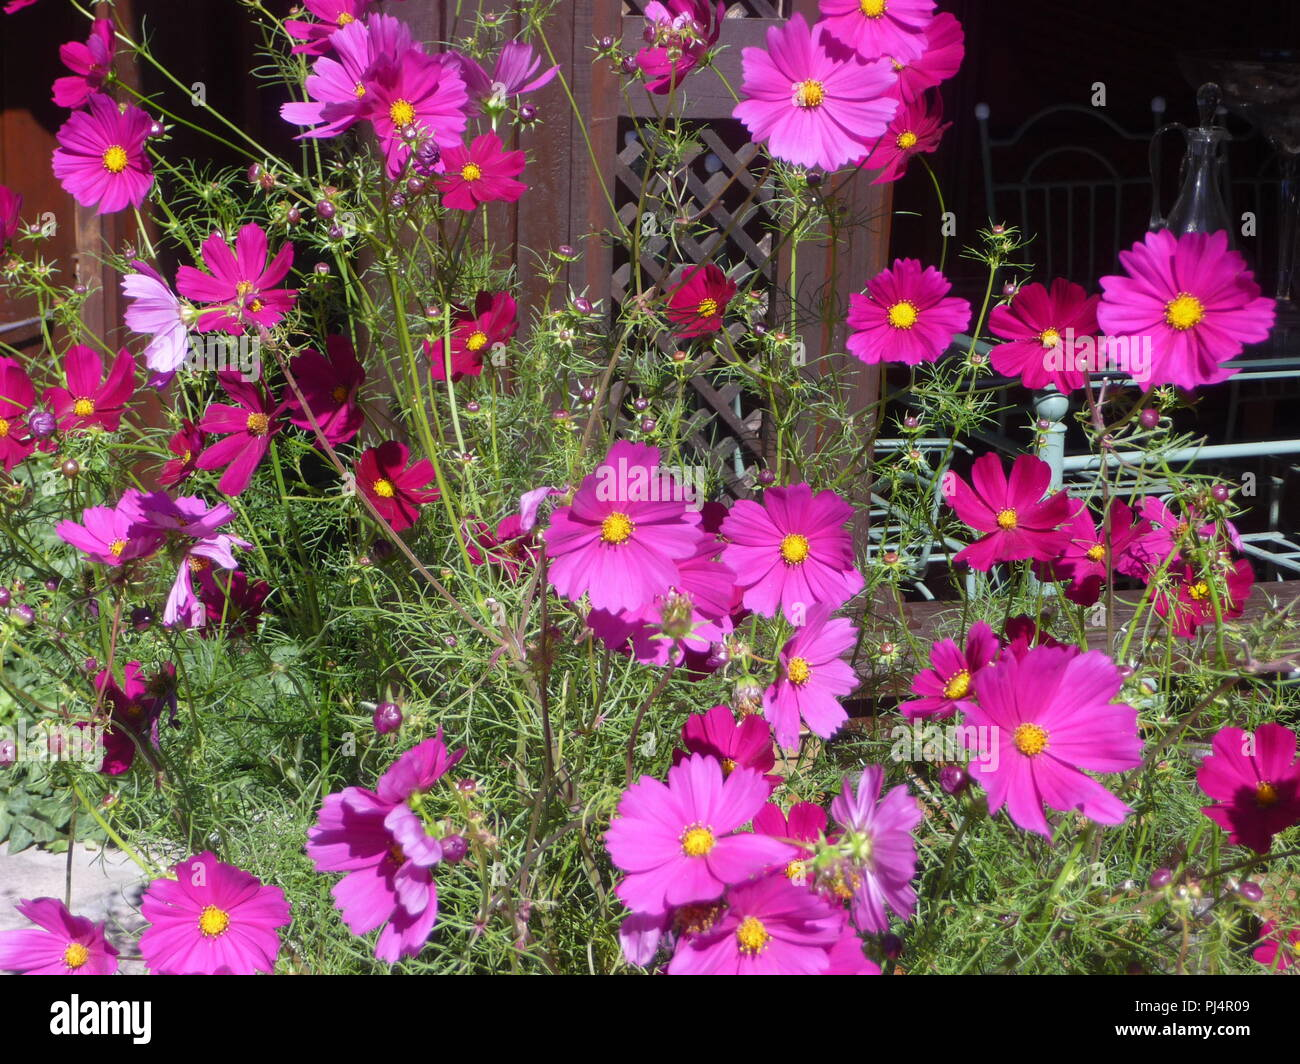 Decoration Parterre Rose Parterre Stock Photos Rose Parterre Stock Images Alamy